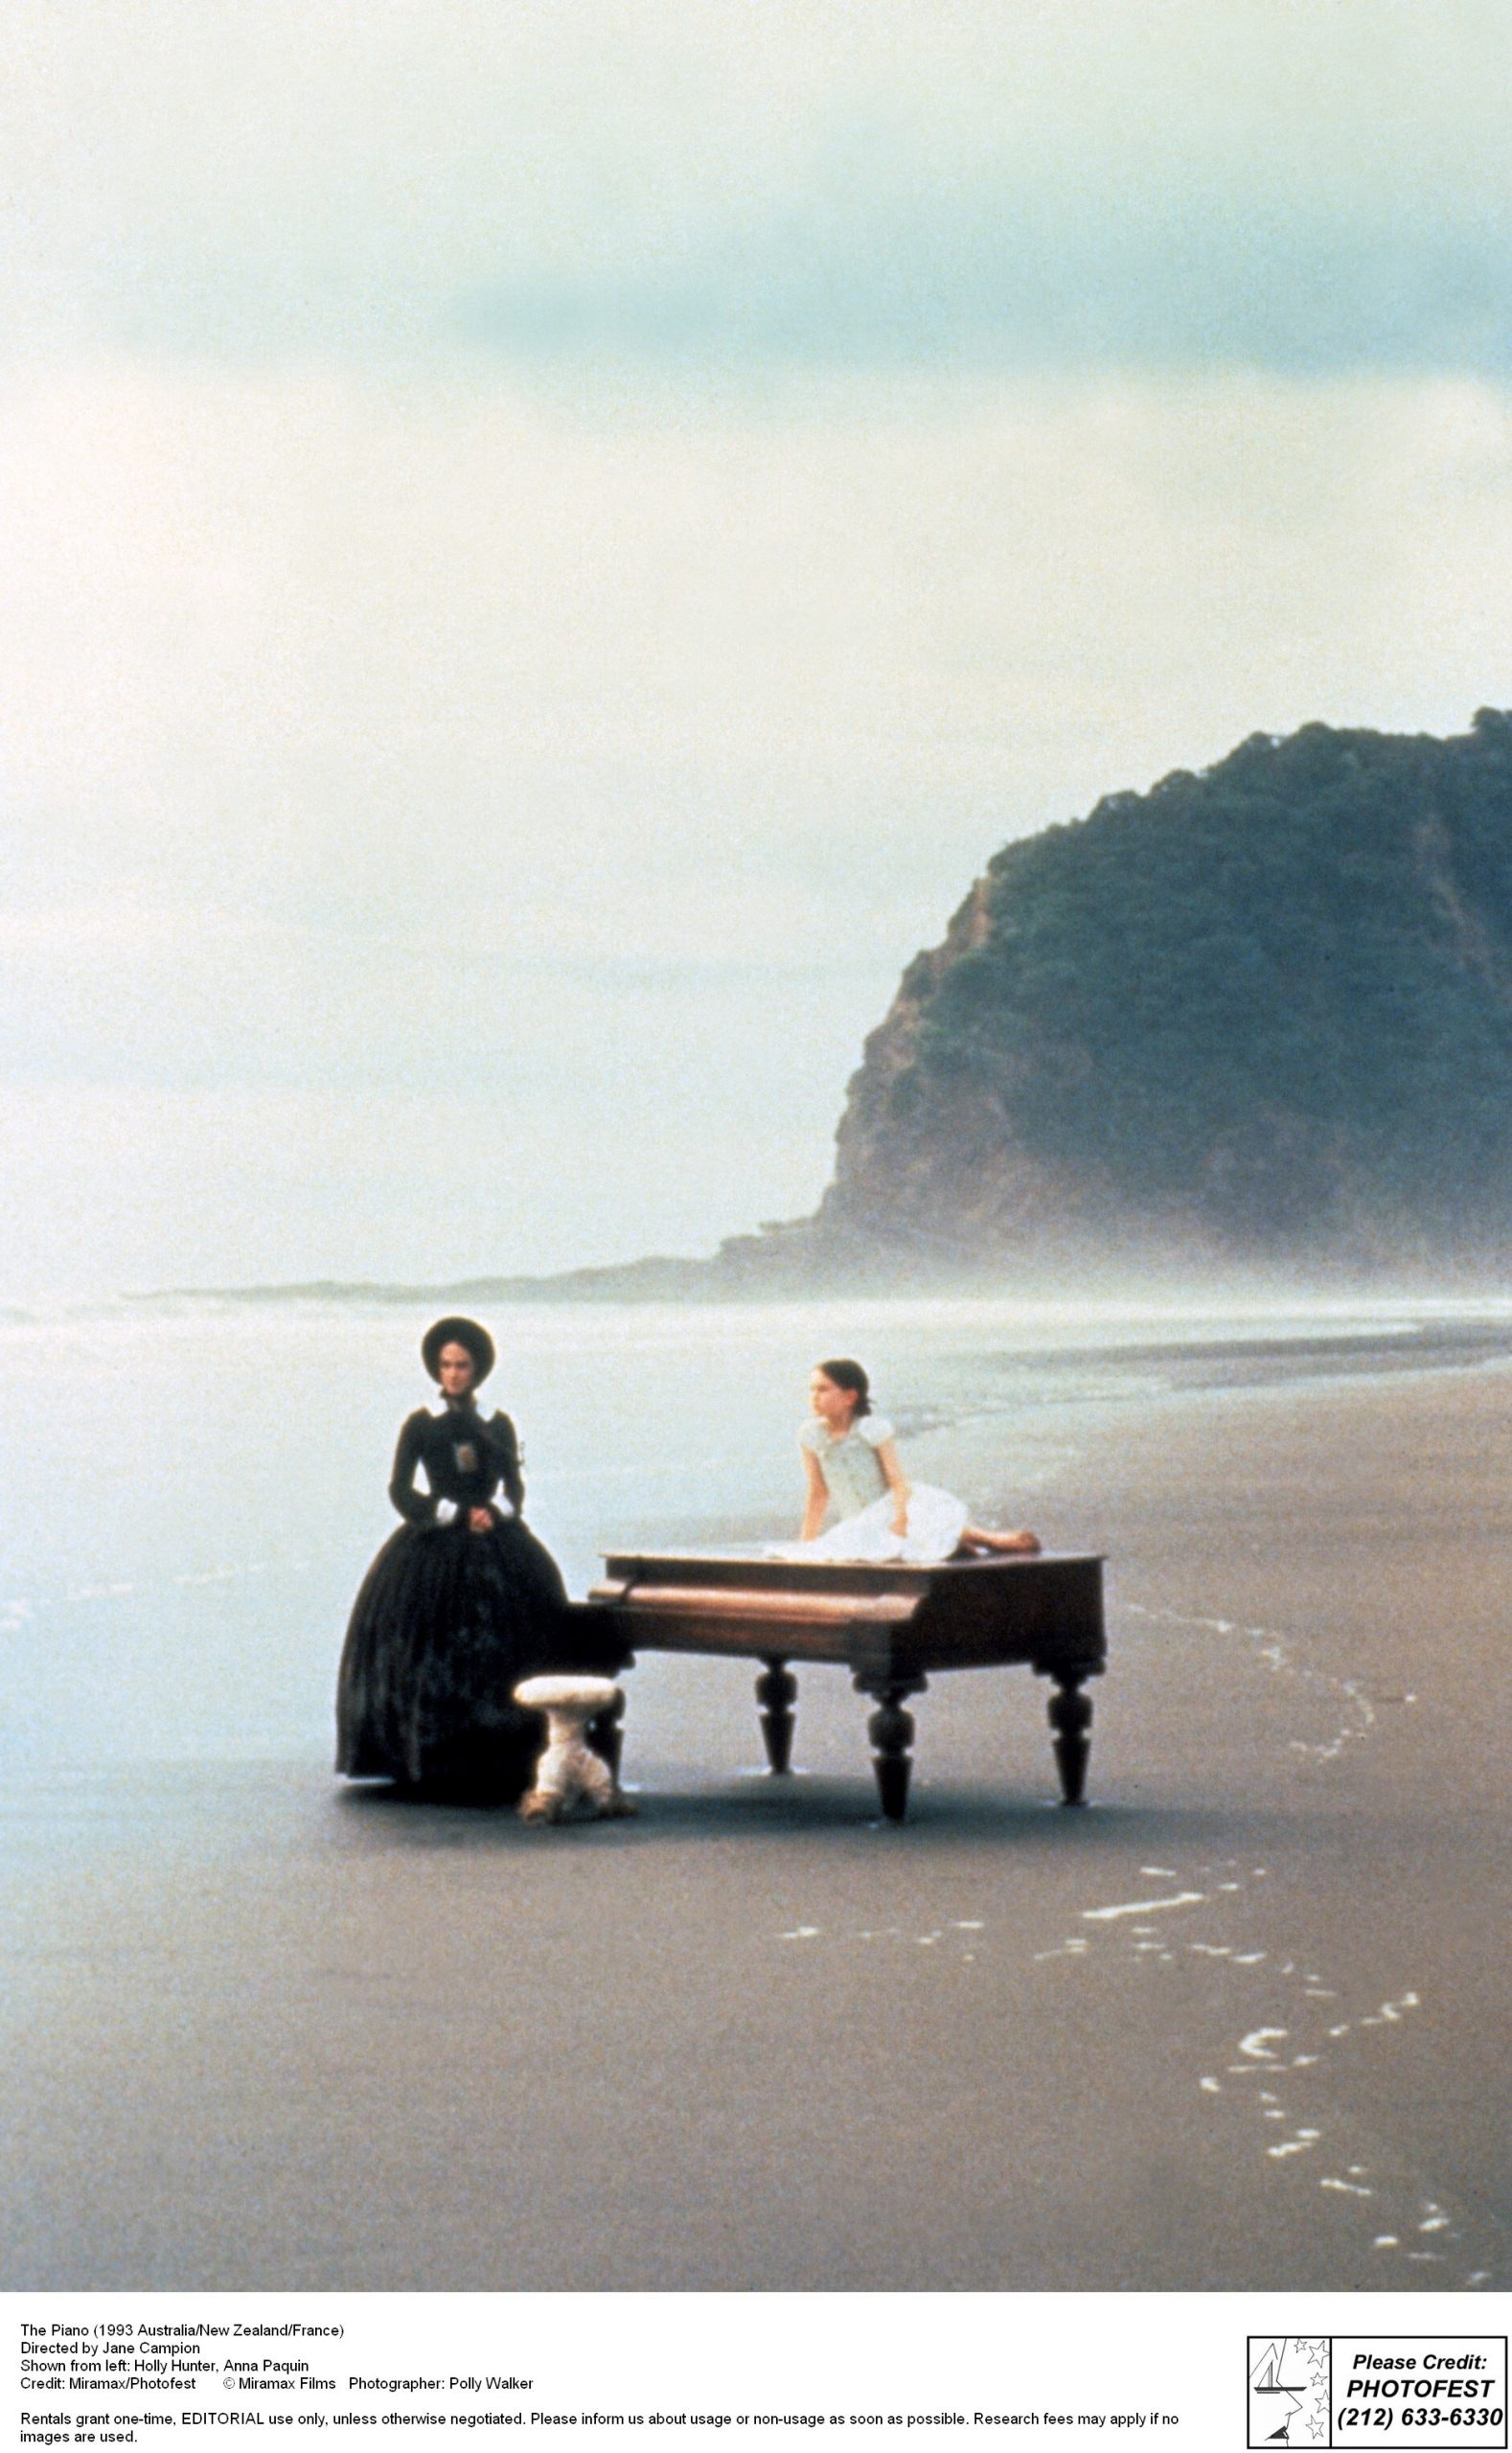 A woman sits at a piano on a beach.